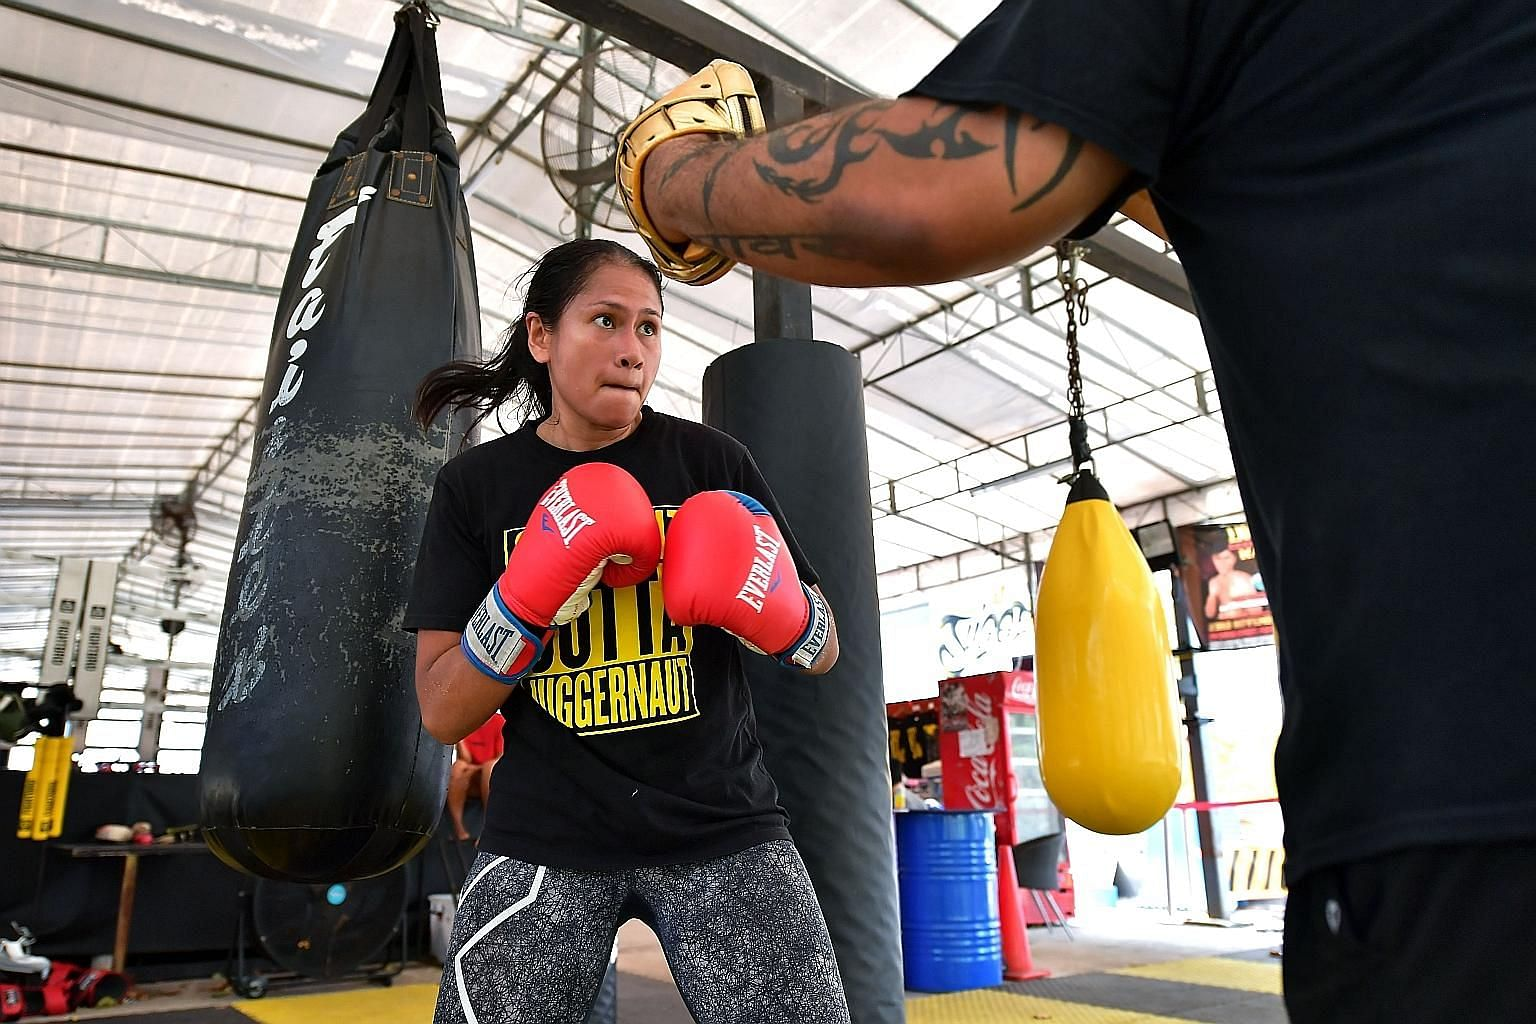 Local professional boxer Nurshahidah Roslie training for her WBC Silver bout on Saturday against China's Fan Yin. The sport is tough not only on her body but also burns a hole in her pocket - while she is a trailblazer for women boxers here, she has